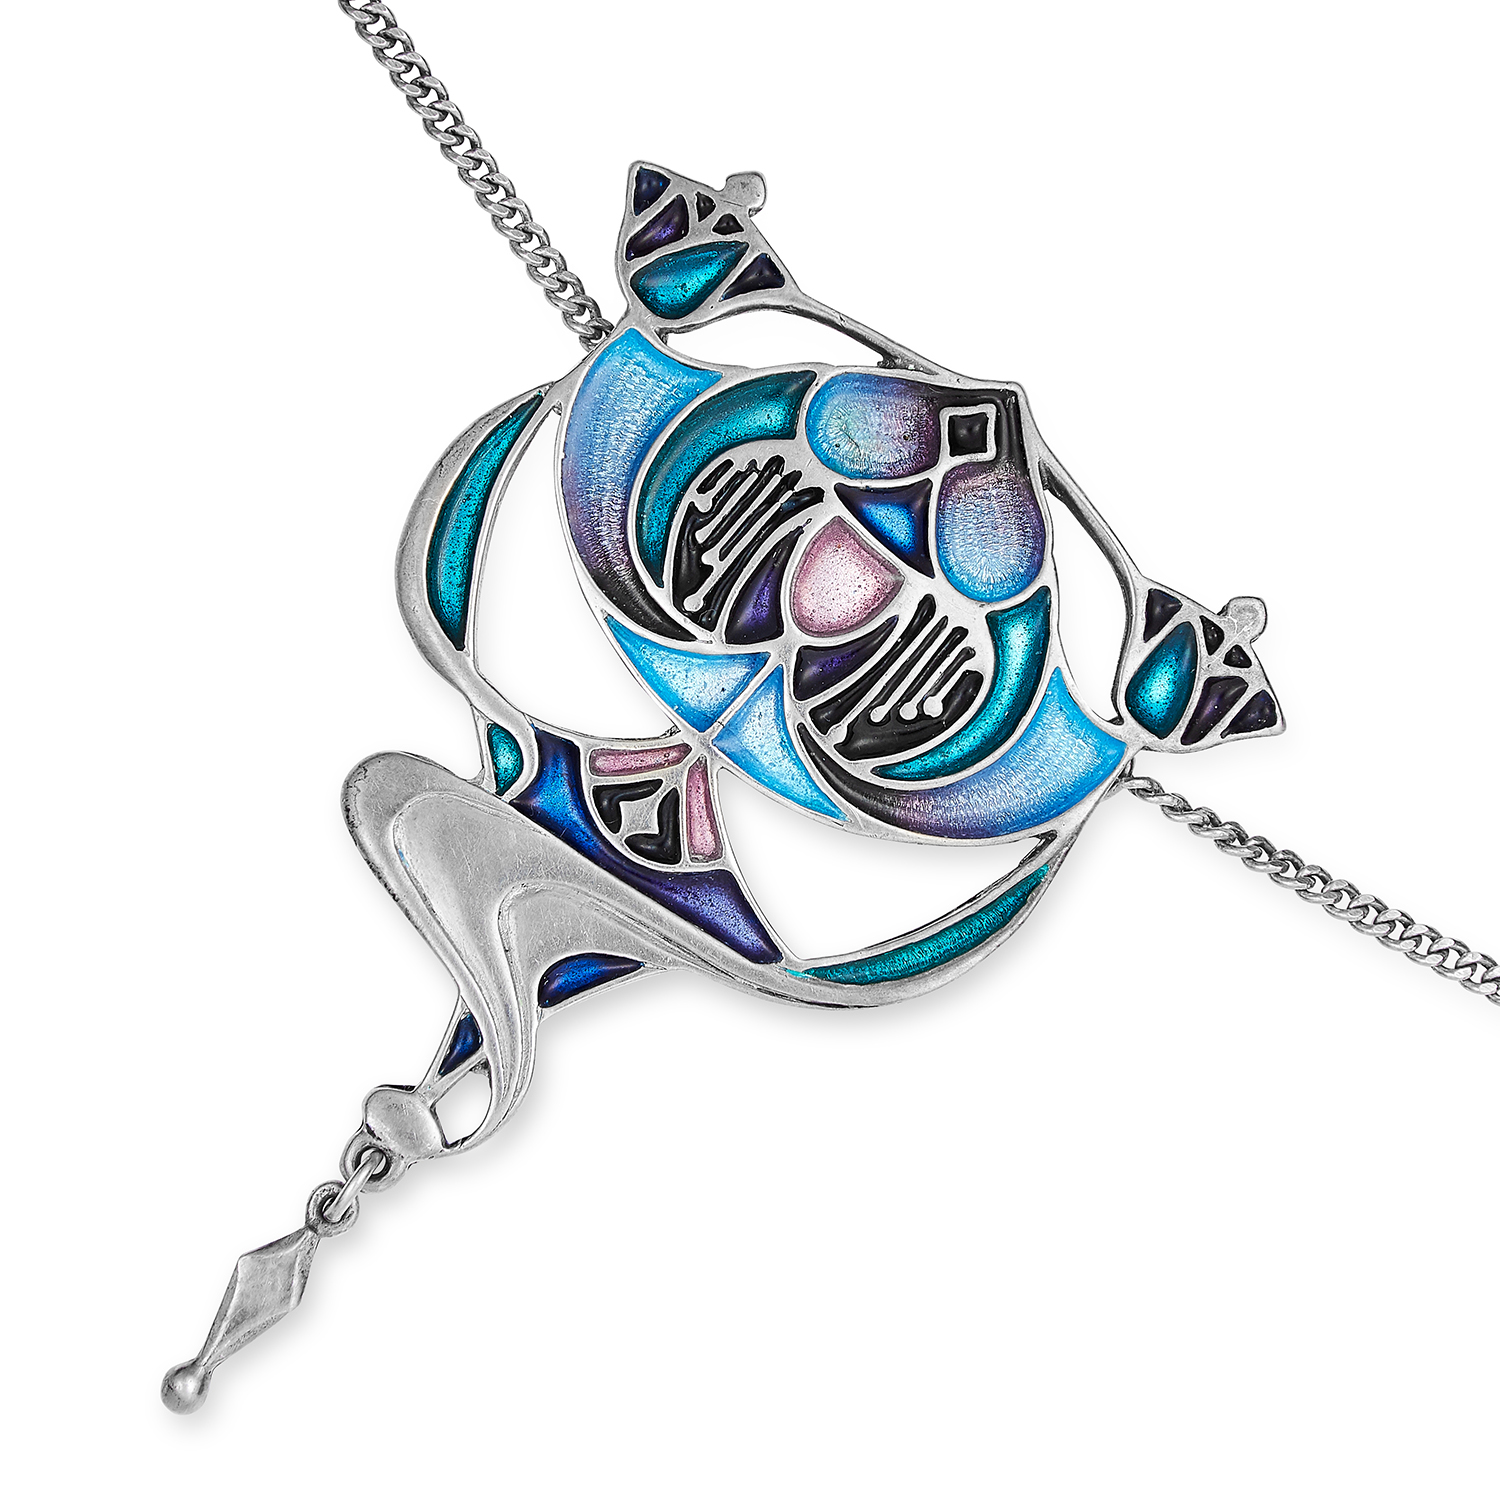 ART NOUVEAU ENAMEL PENDANT NECKLACE in silver, with black, purple and blue enamel, stamped 925,